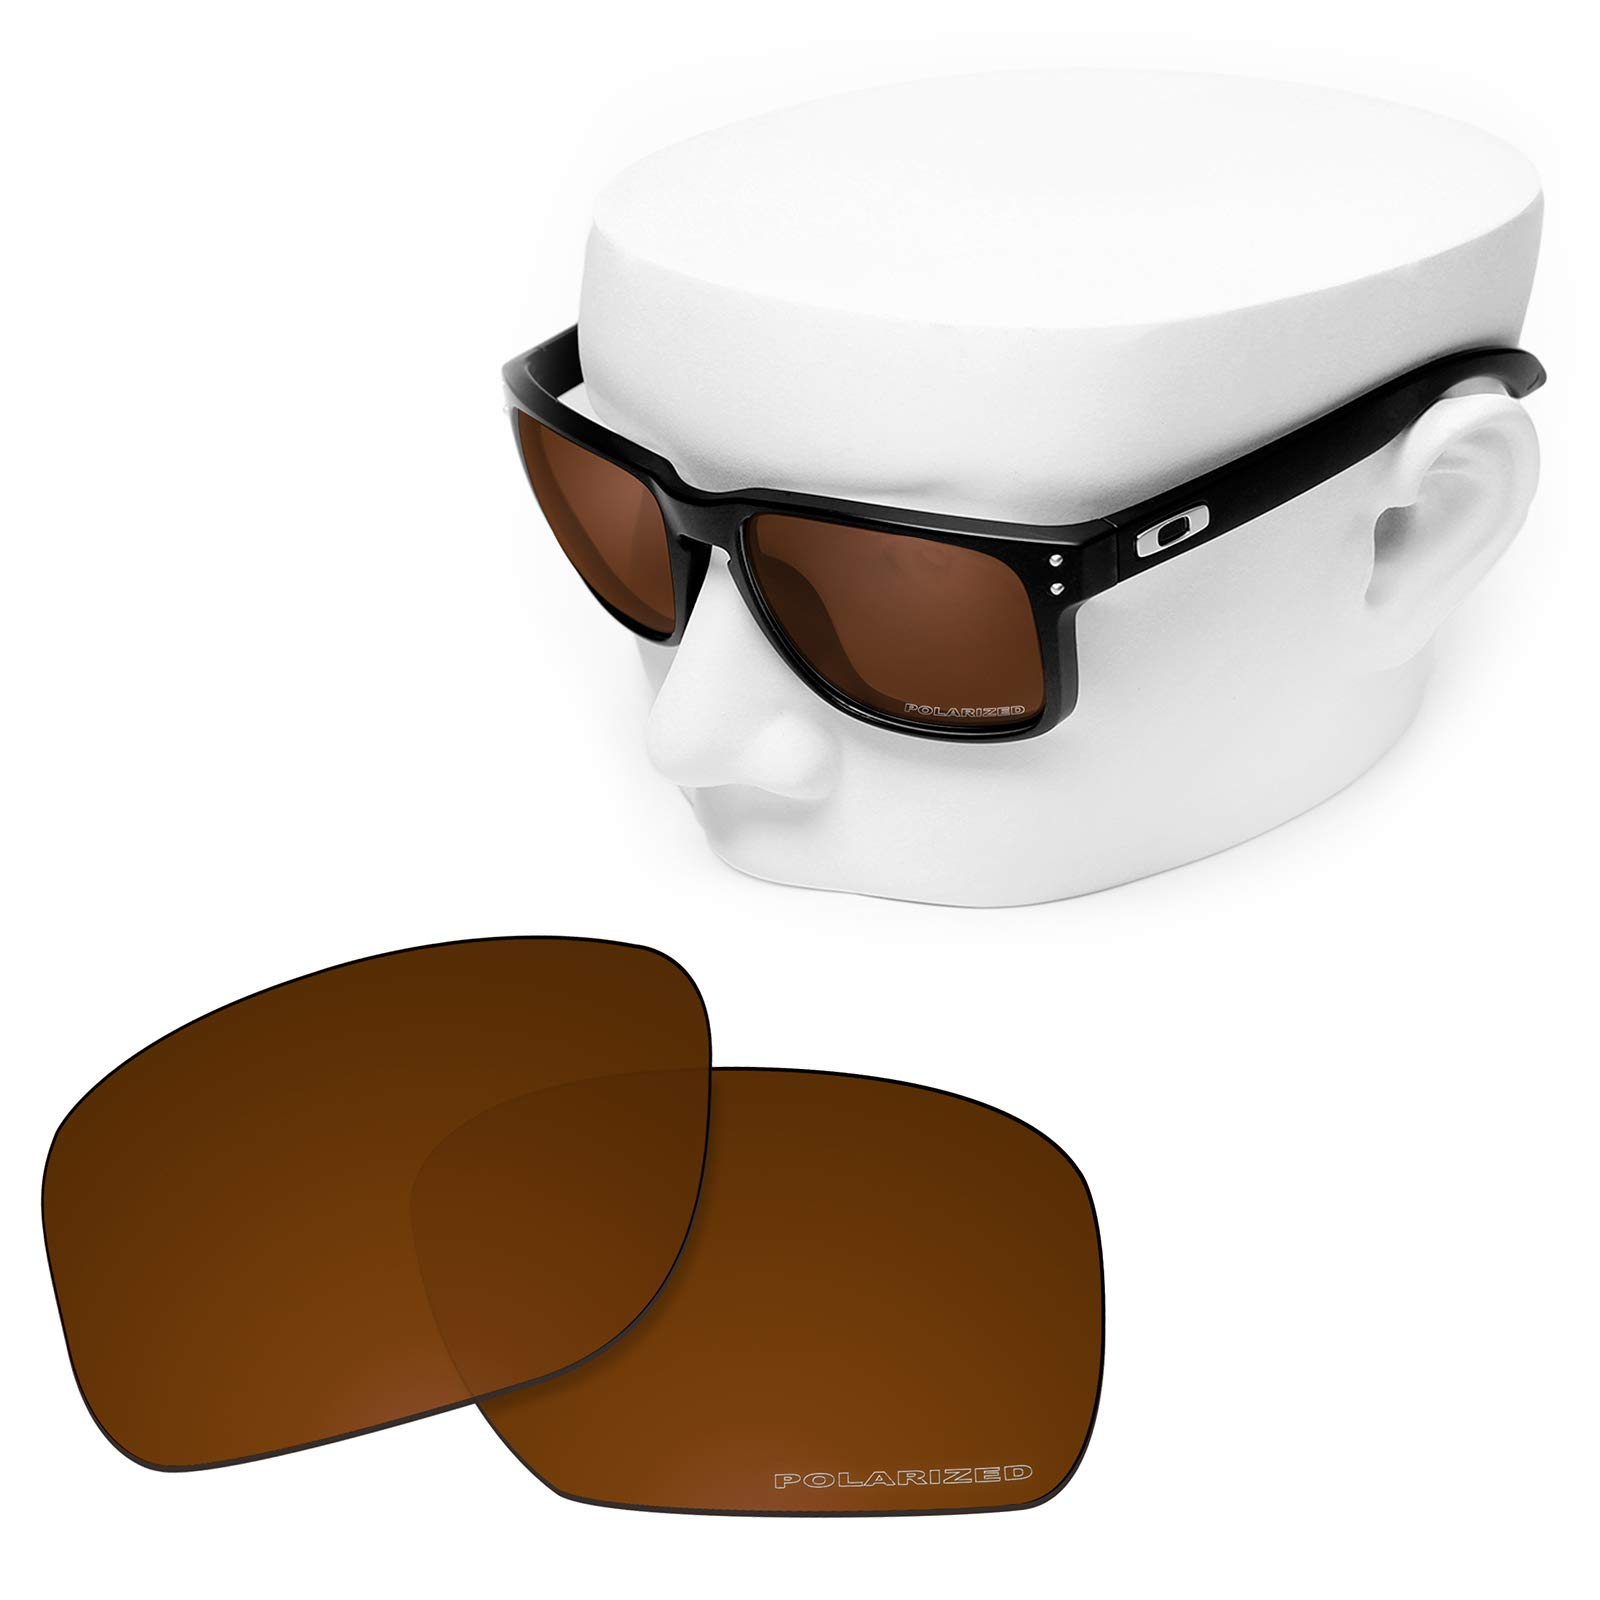 OOWLIT Replacement Sunglass Lenses for Oakley Holbrook Brown Combine8 Polarized by OOWLIT